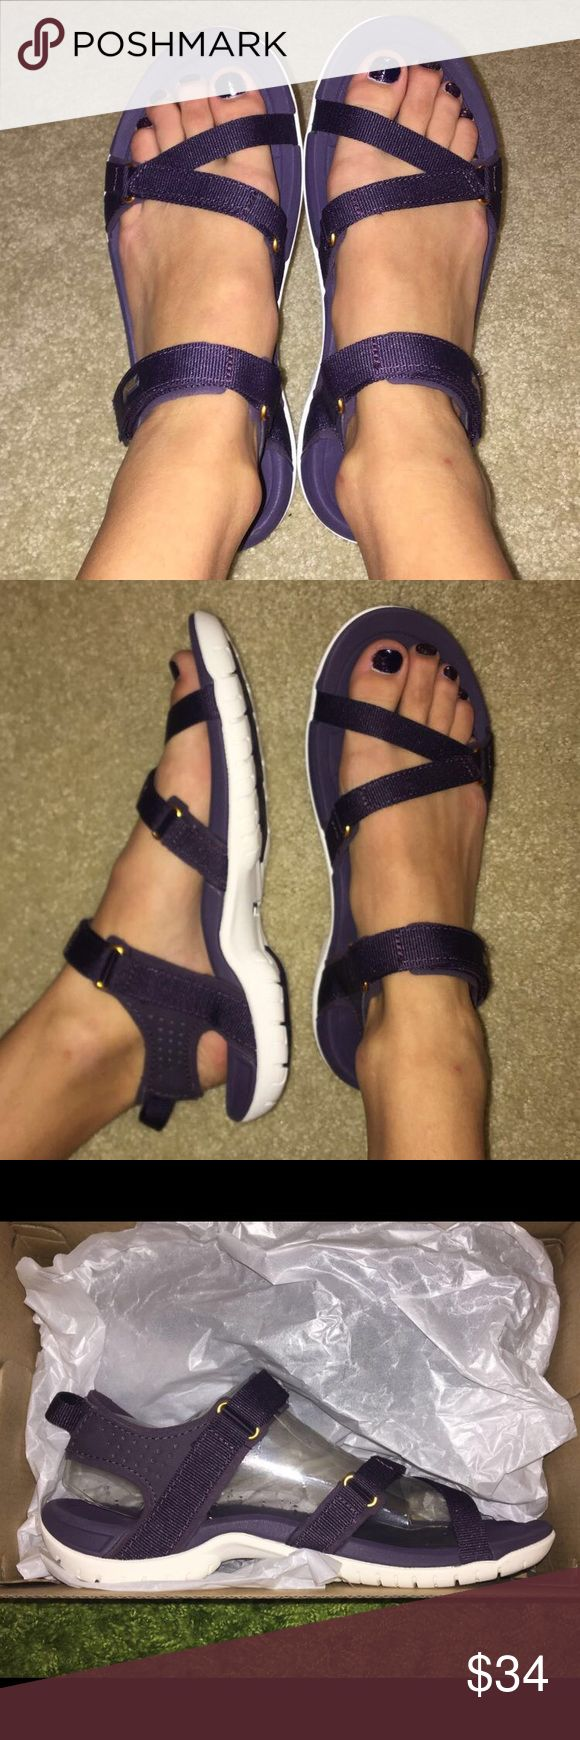 Brand NEW Purple Tevas Brand new ‼️ trendy strapped sandals, great for outdoors and in water! Teva Shoes Sandals